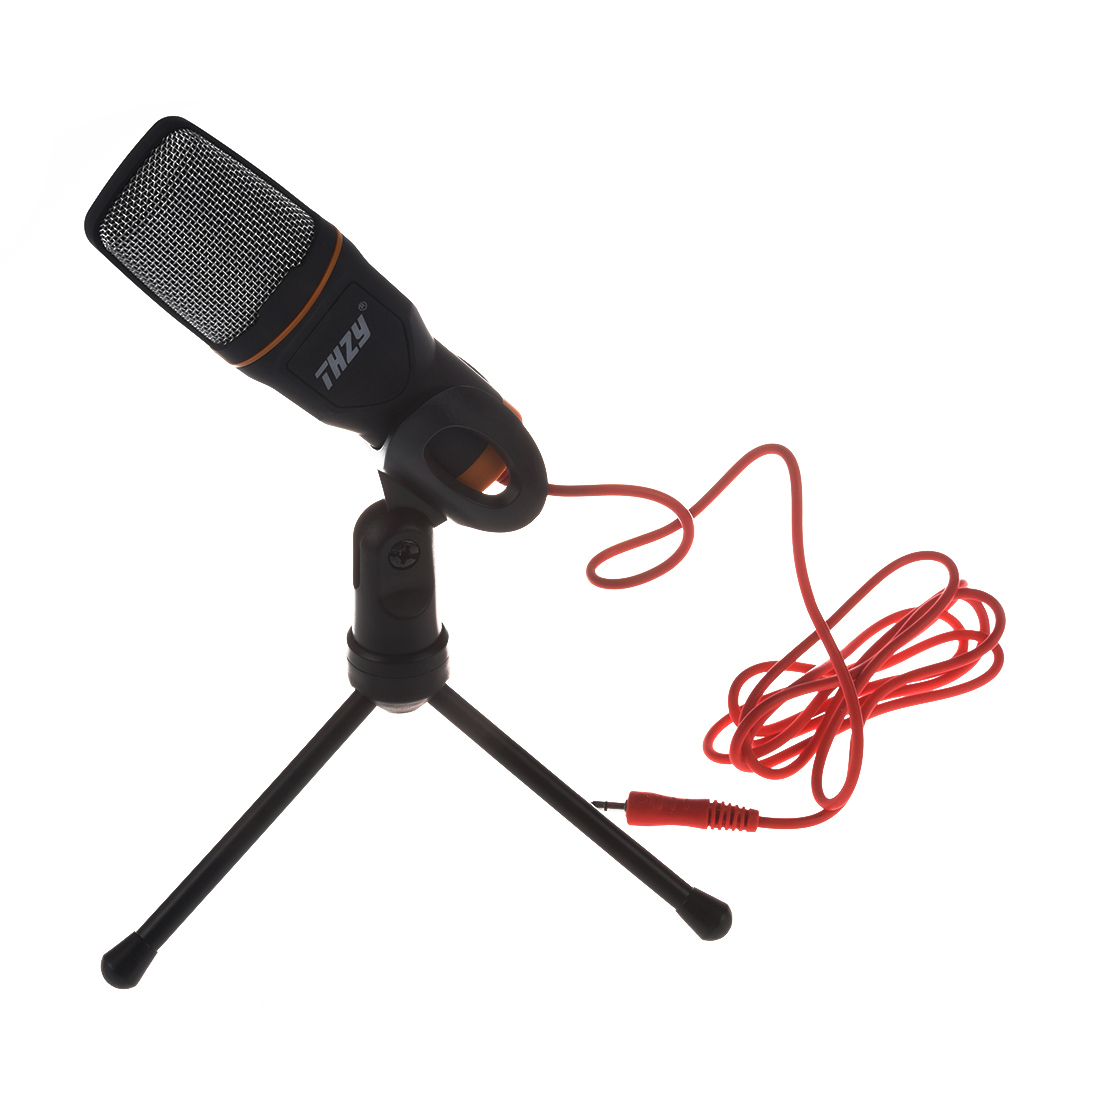 Microphone Thzy 35mm Audio Jack Connection Condenser Sound Wiring With Tripod For Computer Laptop Black